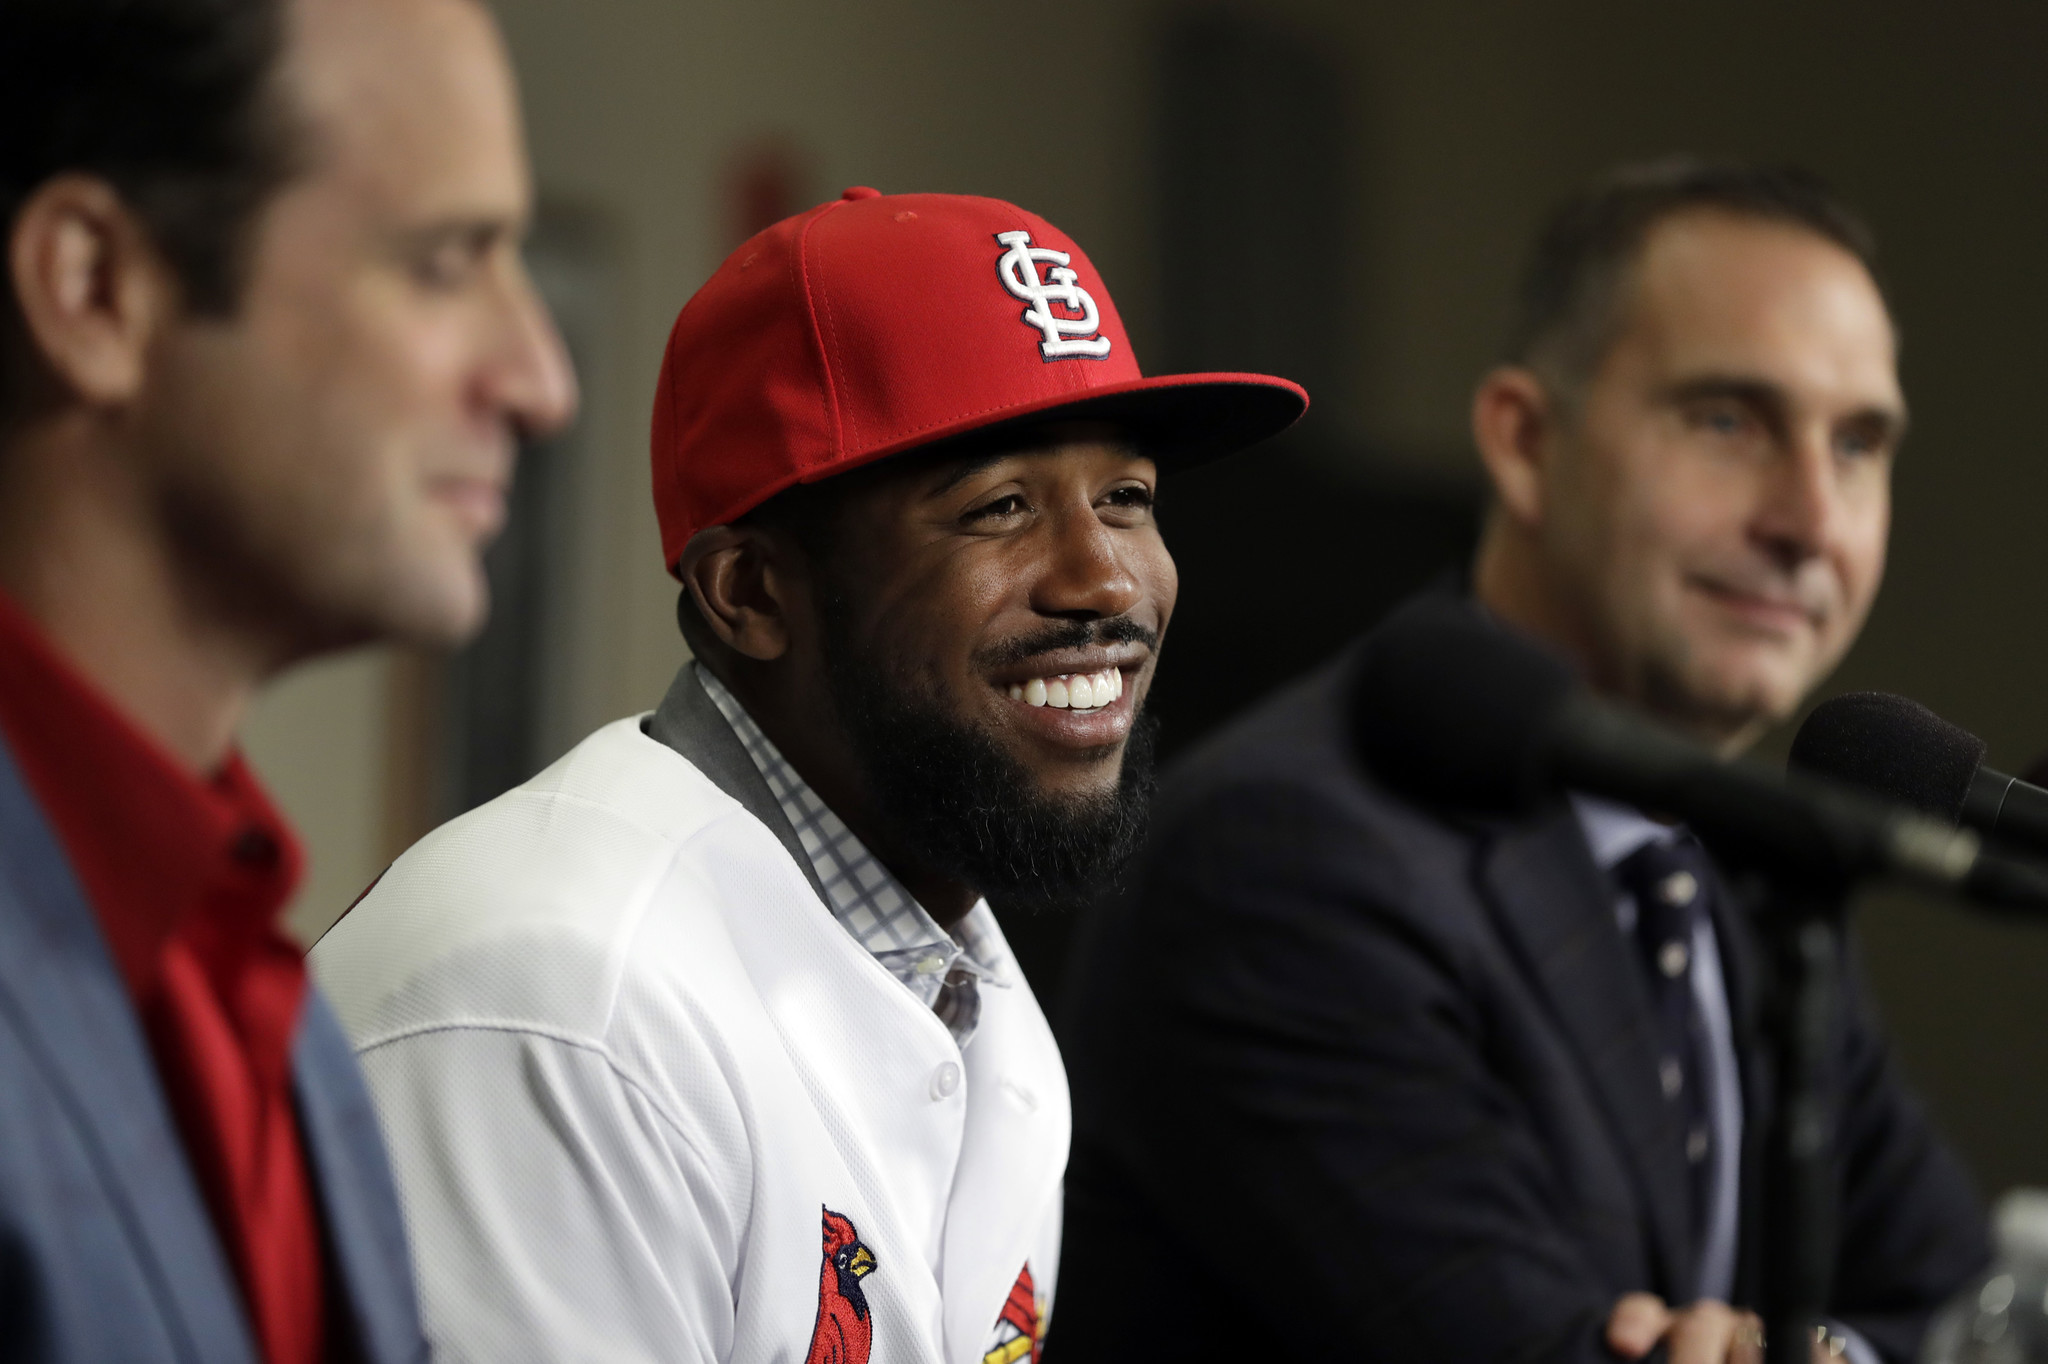 St. Louis Cardinals: Dexter Fowler comps should be a concern